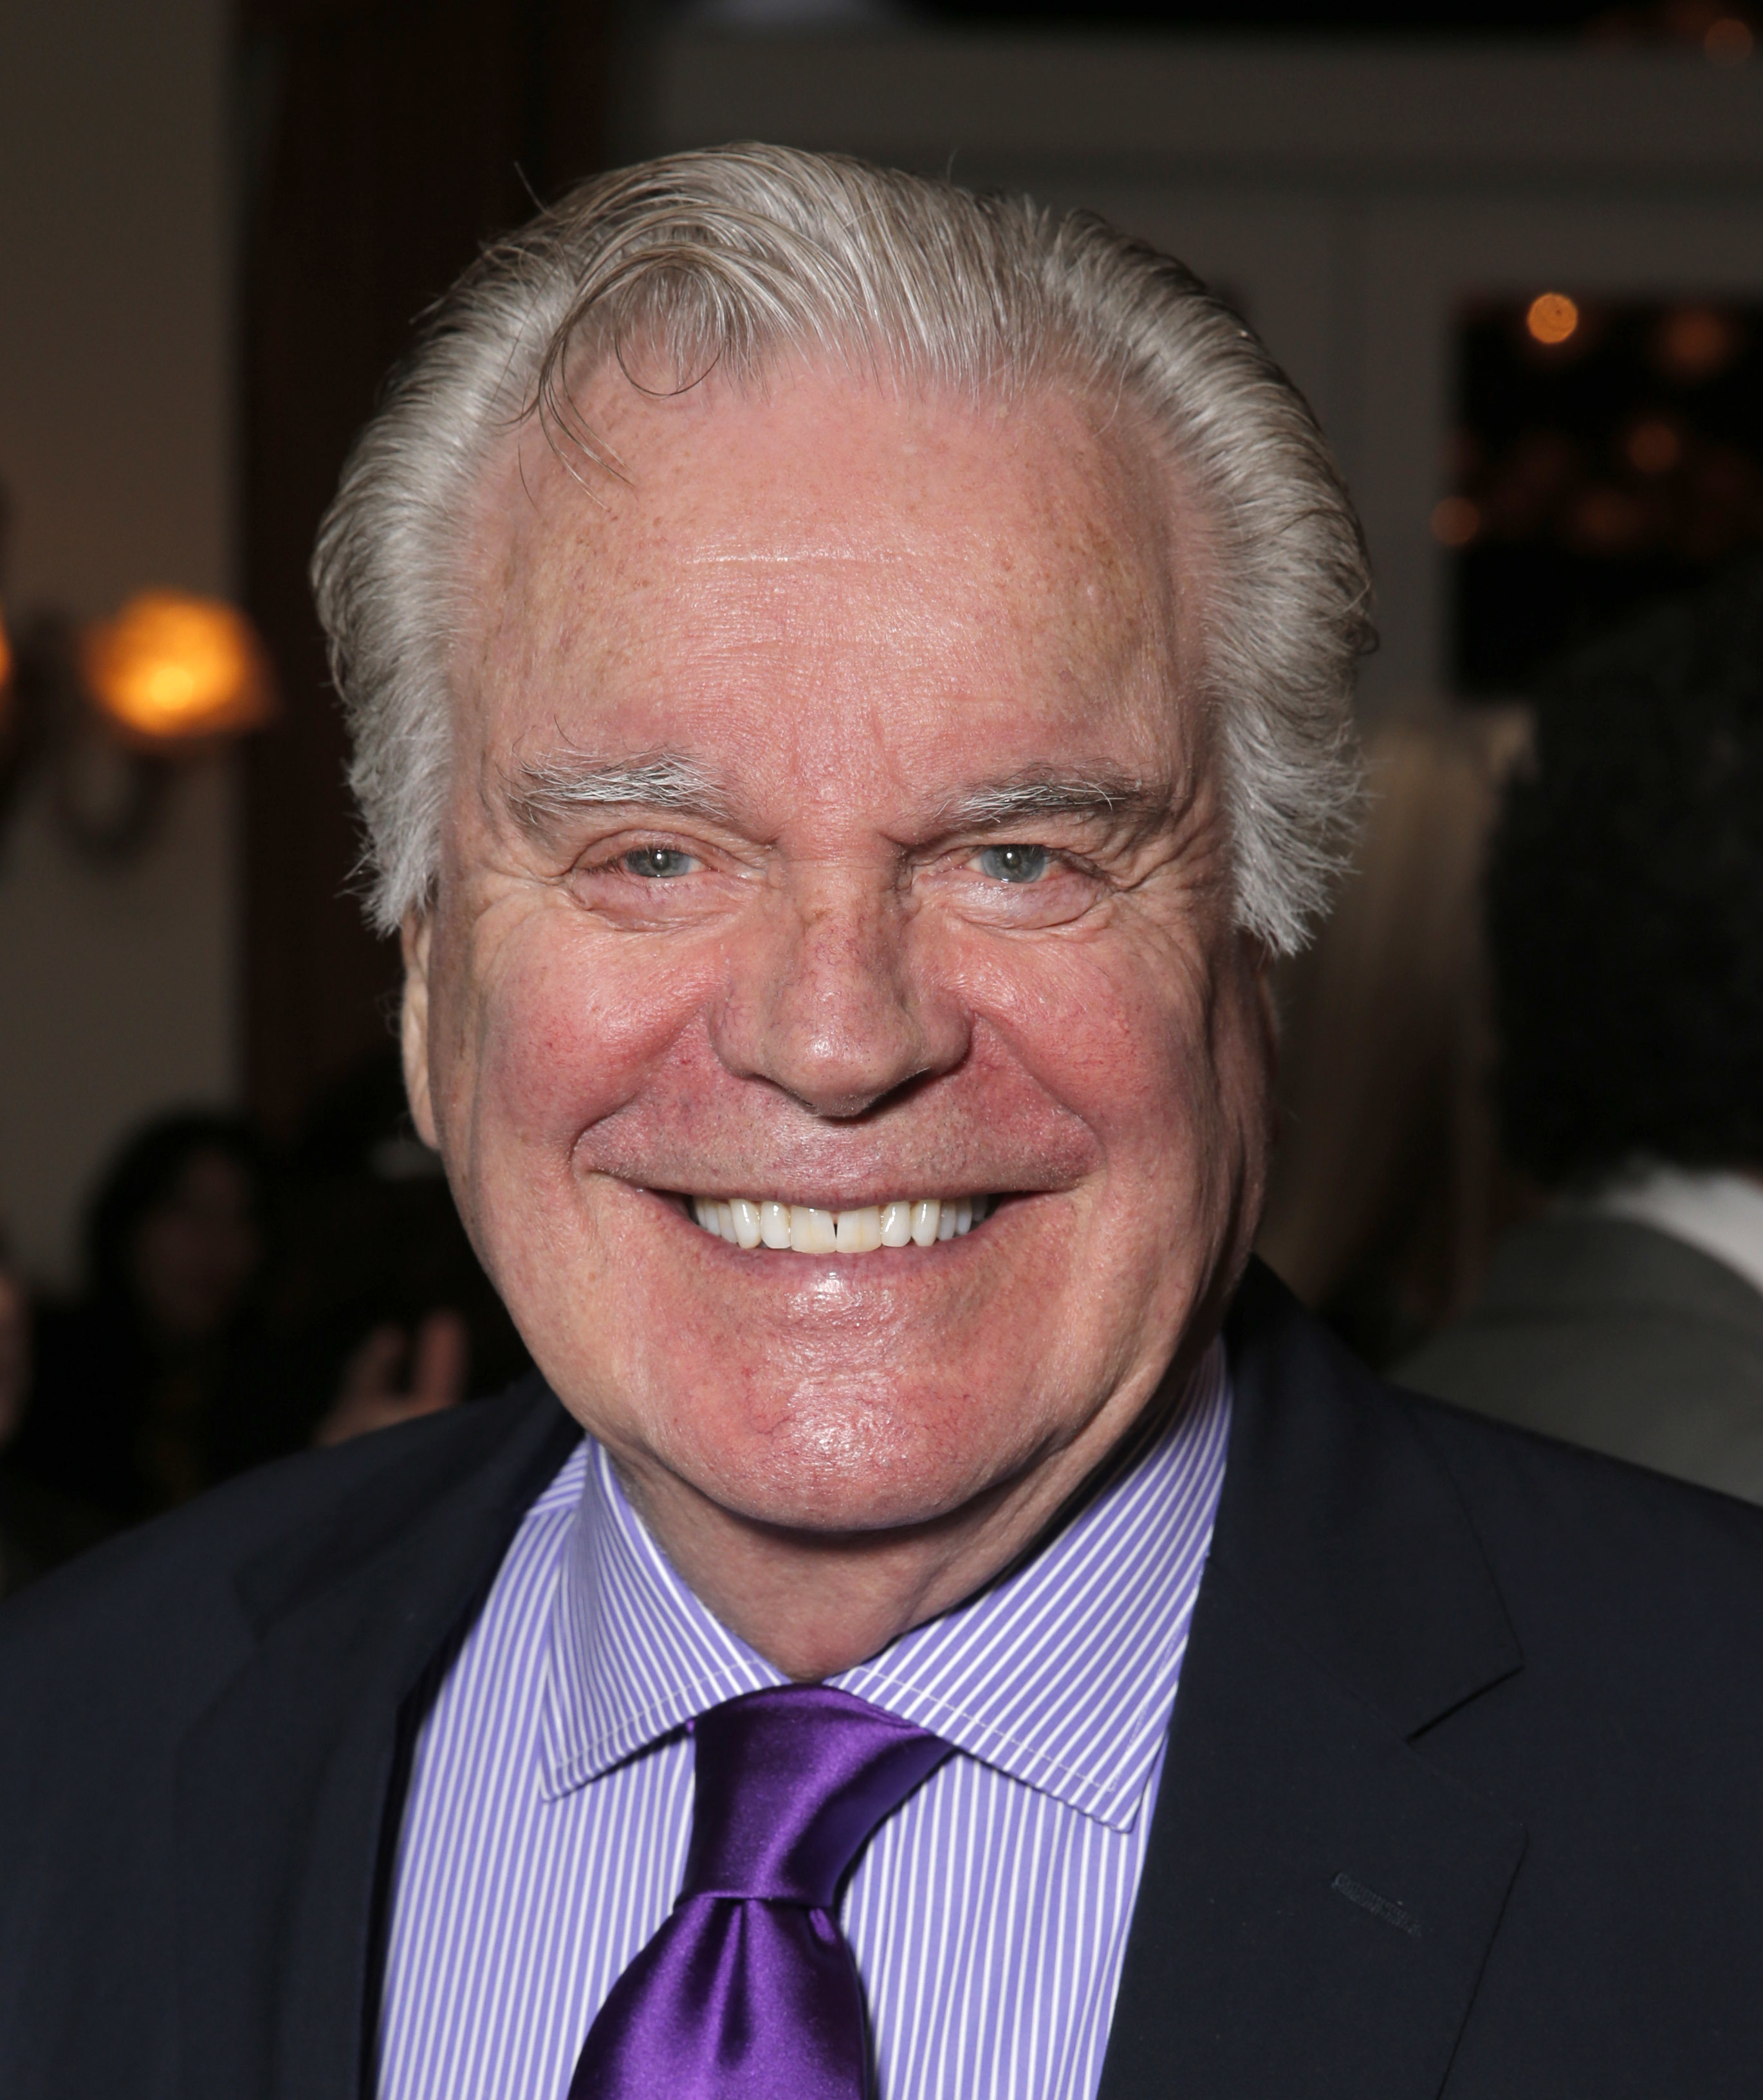 FILE - In this Dec. 1, 2013 file photo, Robert Wagner attends The Caucus for Producers, Writers and Directors 31st Annual Awards in Beverly Hills, Calif. (Photo by Todd Williamson /Invision/AP)<p></p>